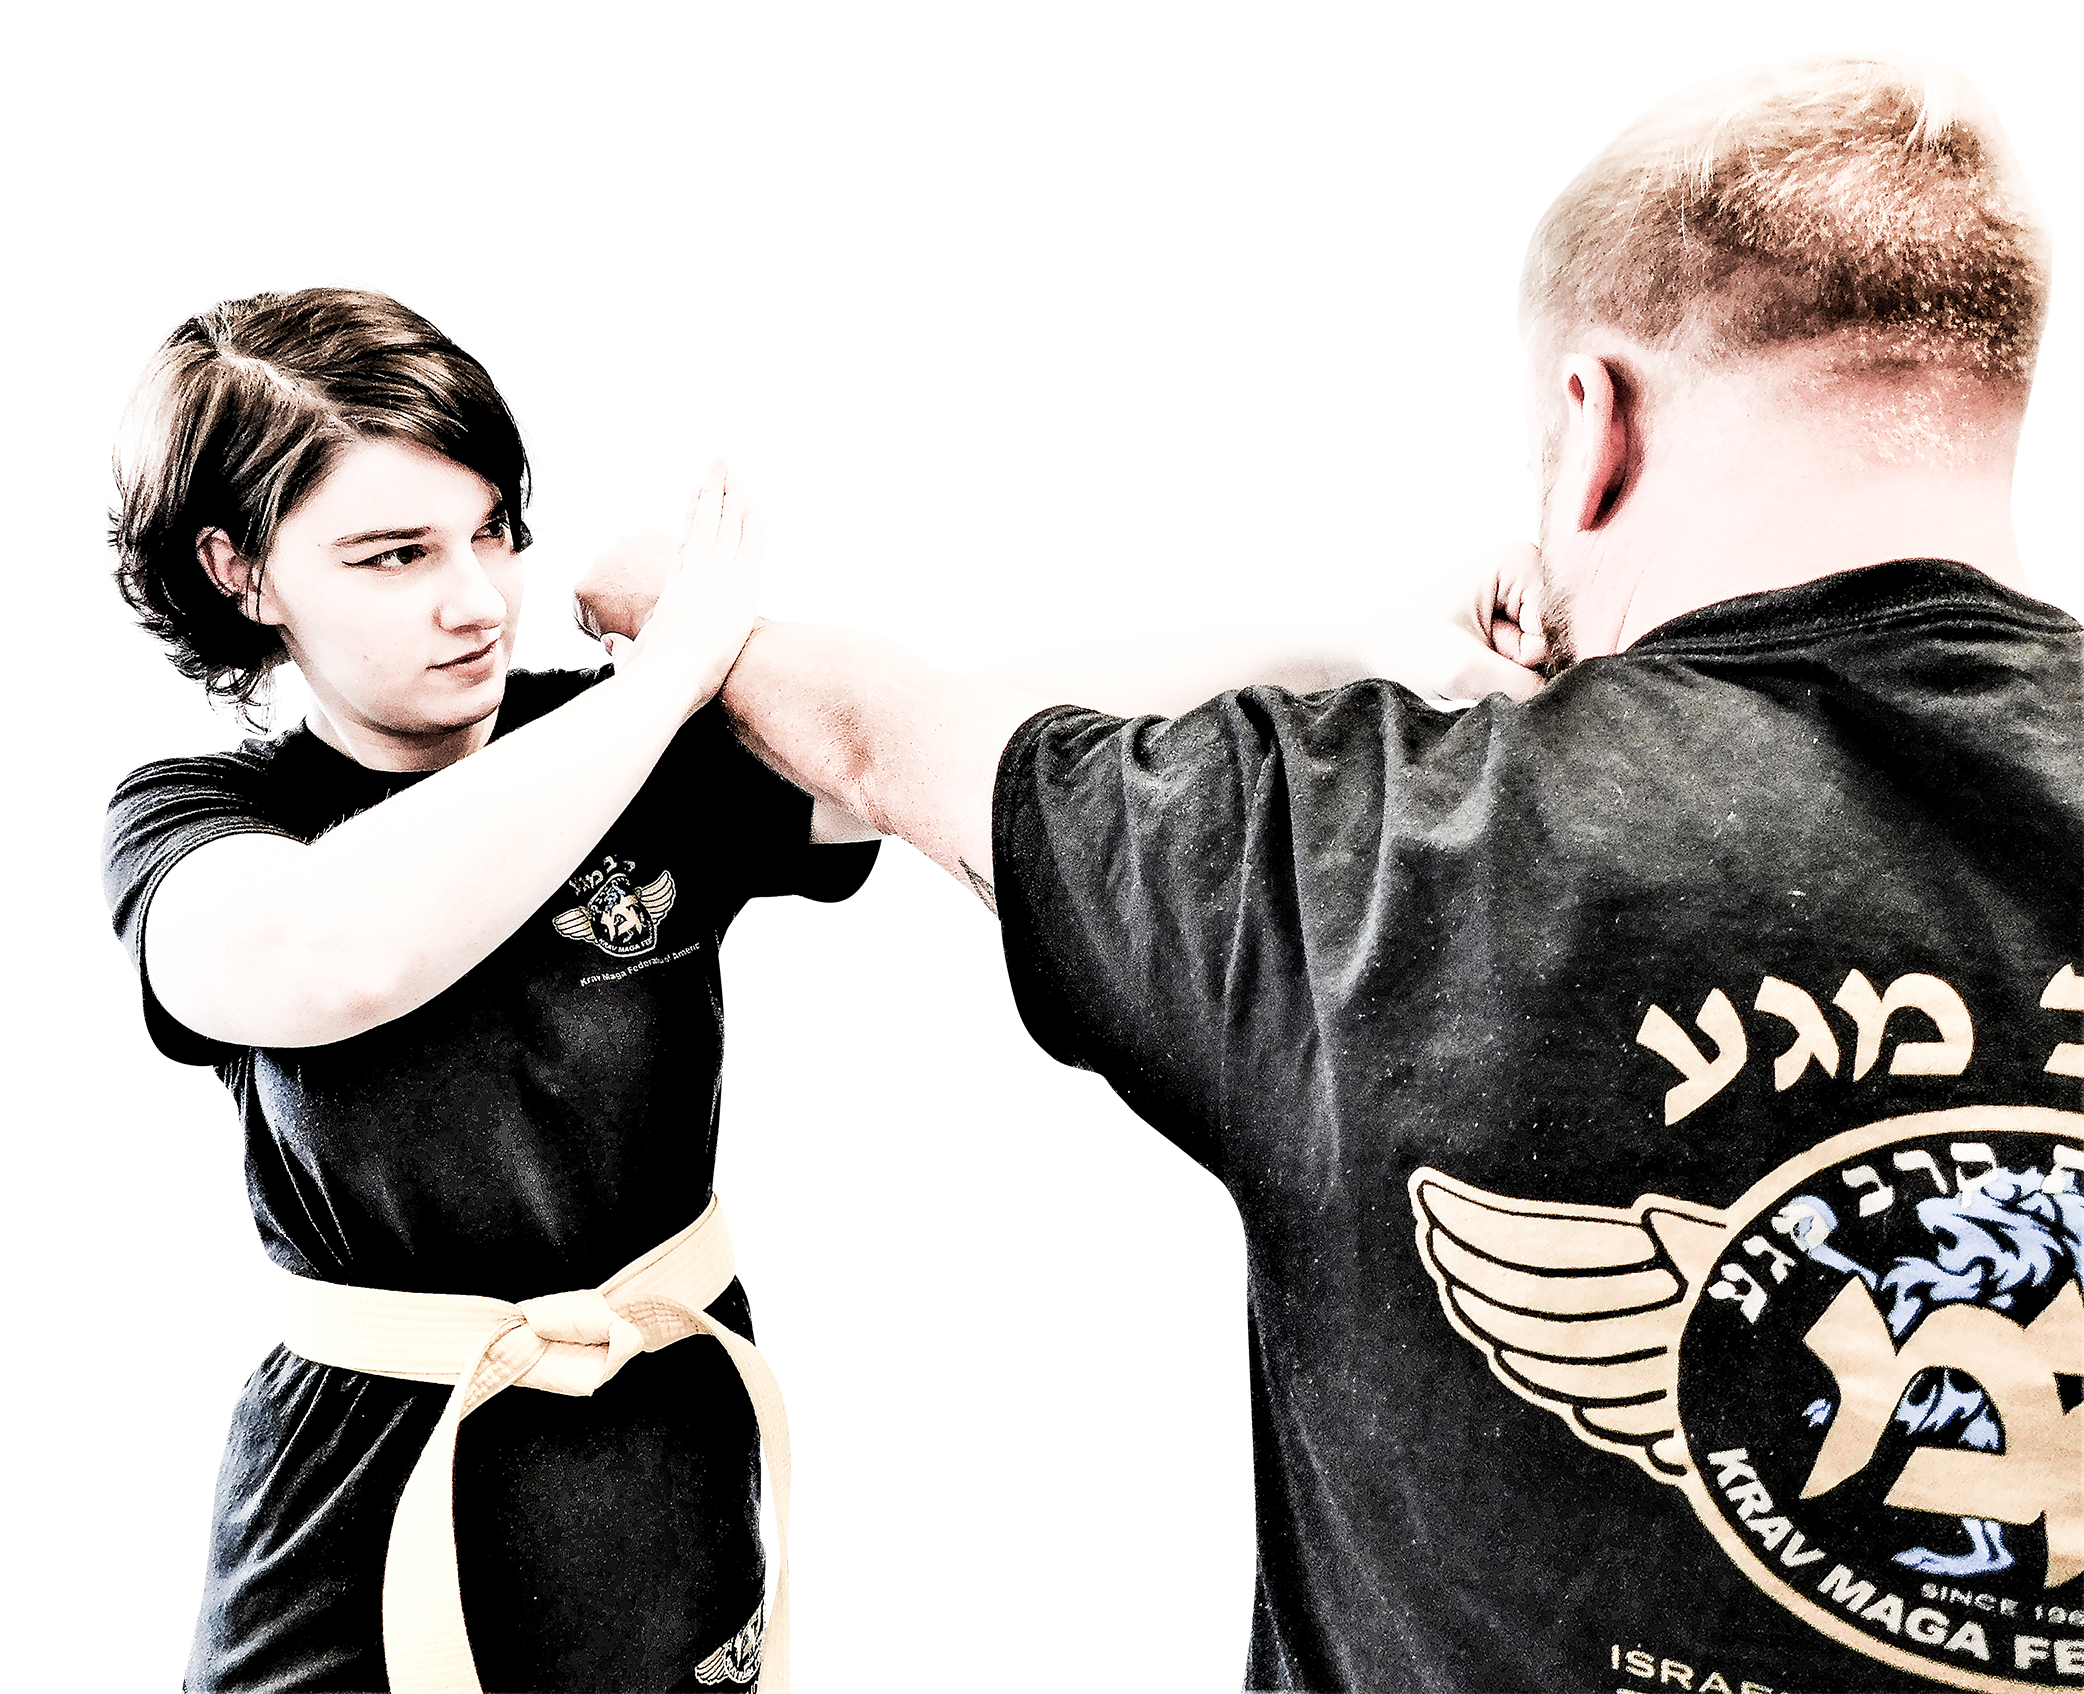 10 Things You May Not Know About Krav Maga